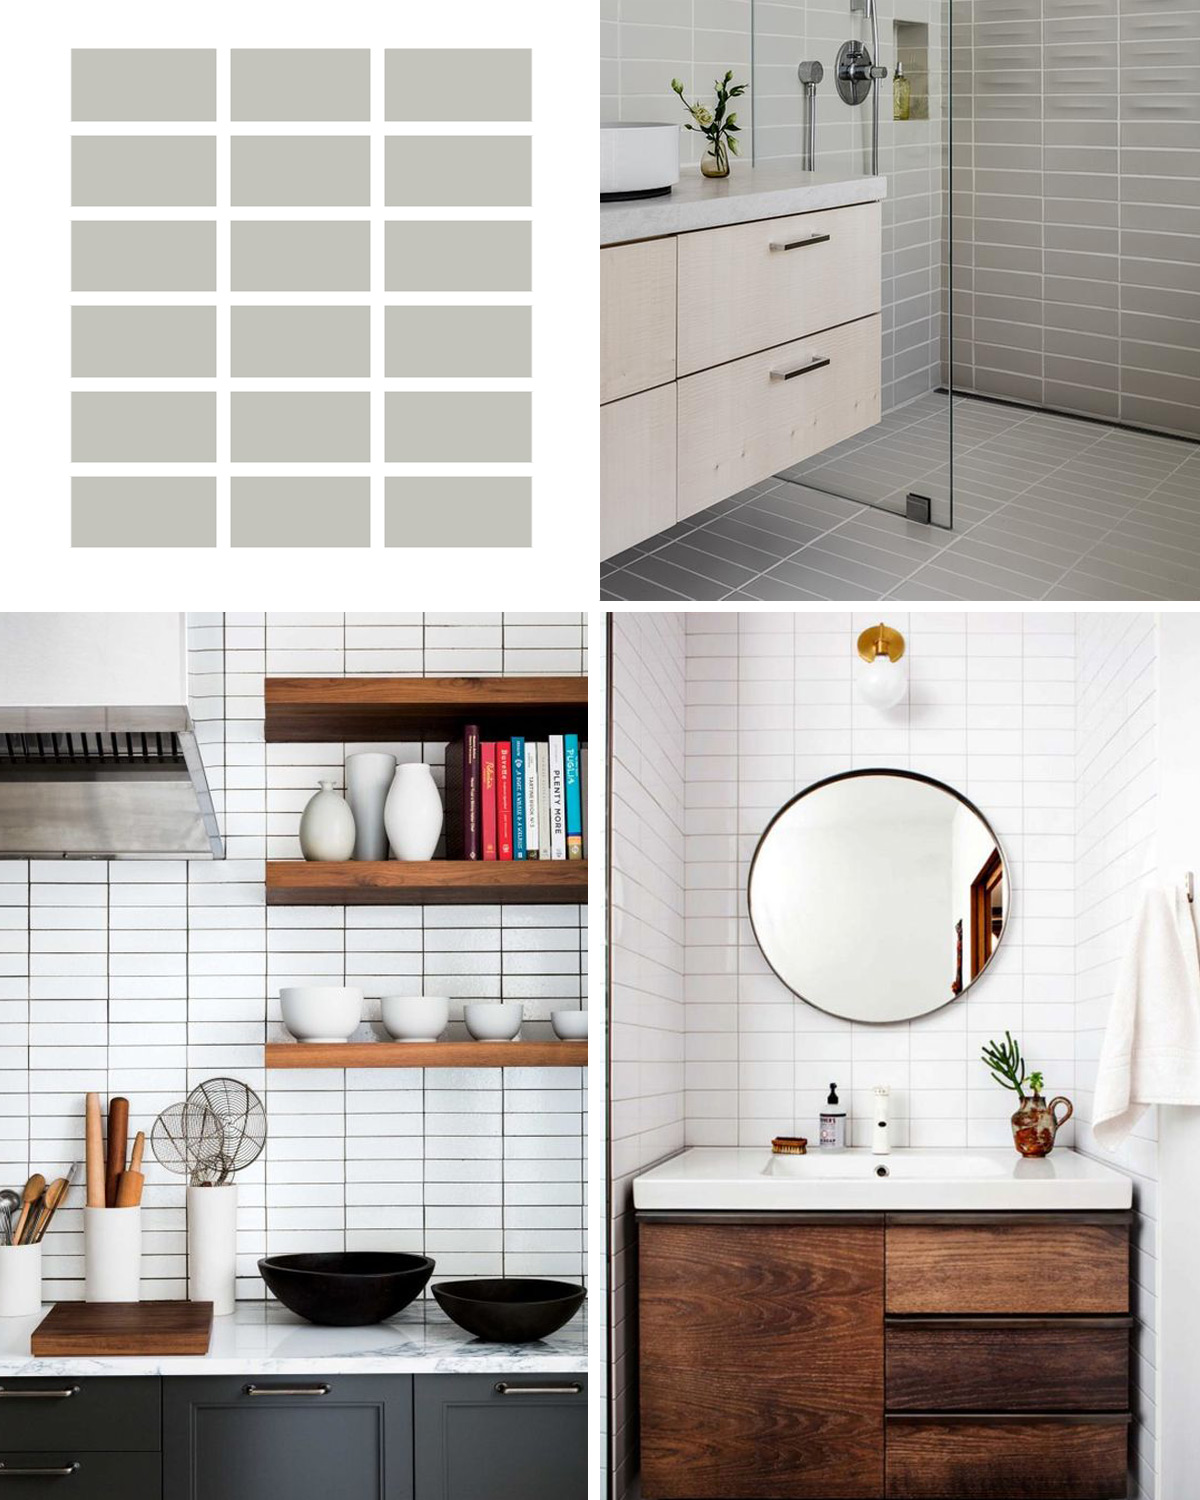 8 Subway Tile Patterns The Home Studio Interior Designers